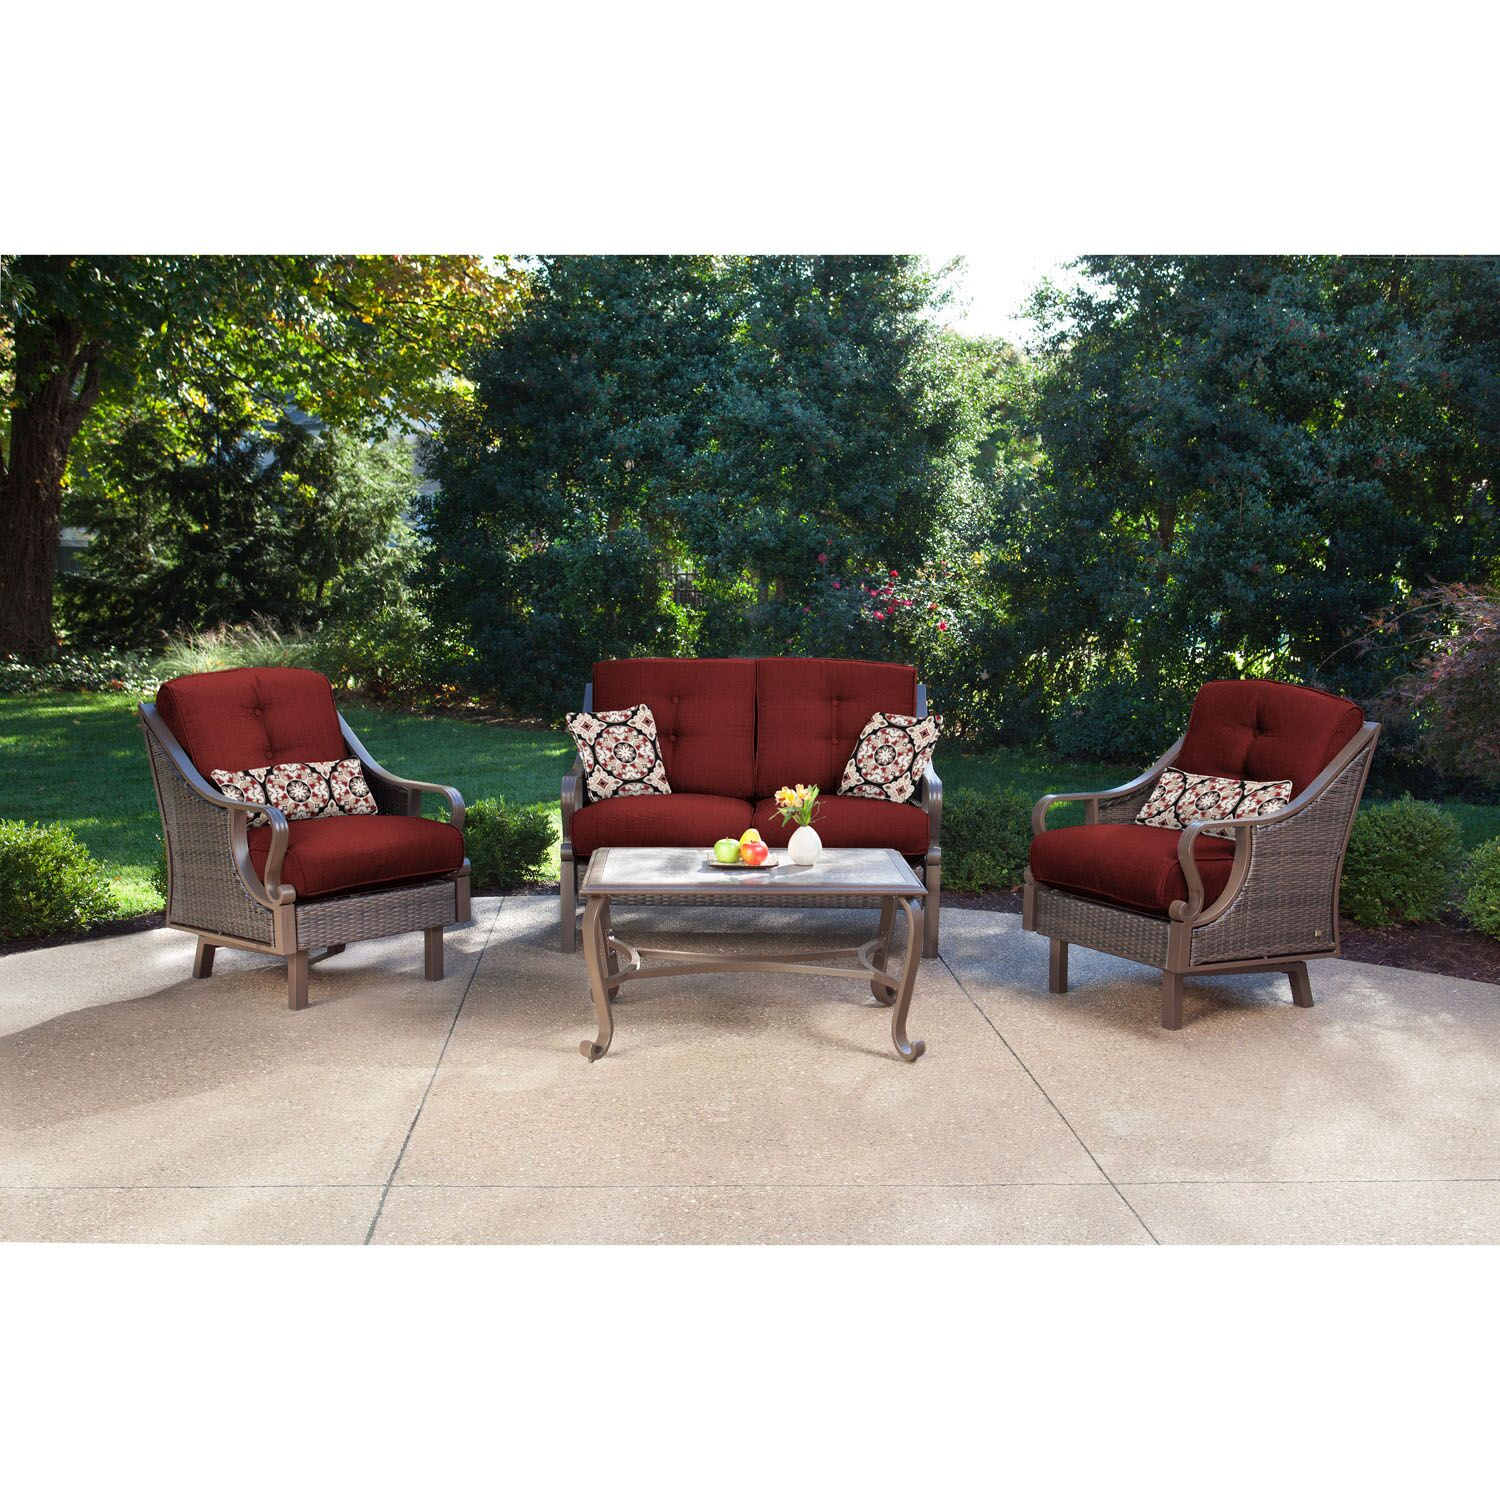 Sherwood 4 Piece Sofa Set with Cushions Fabric: Crimson Red